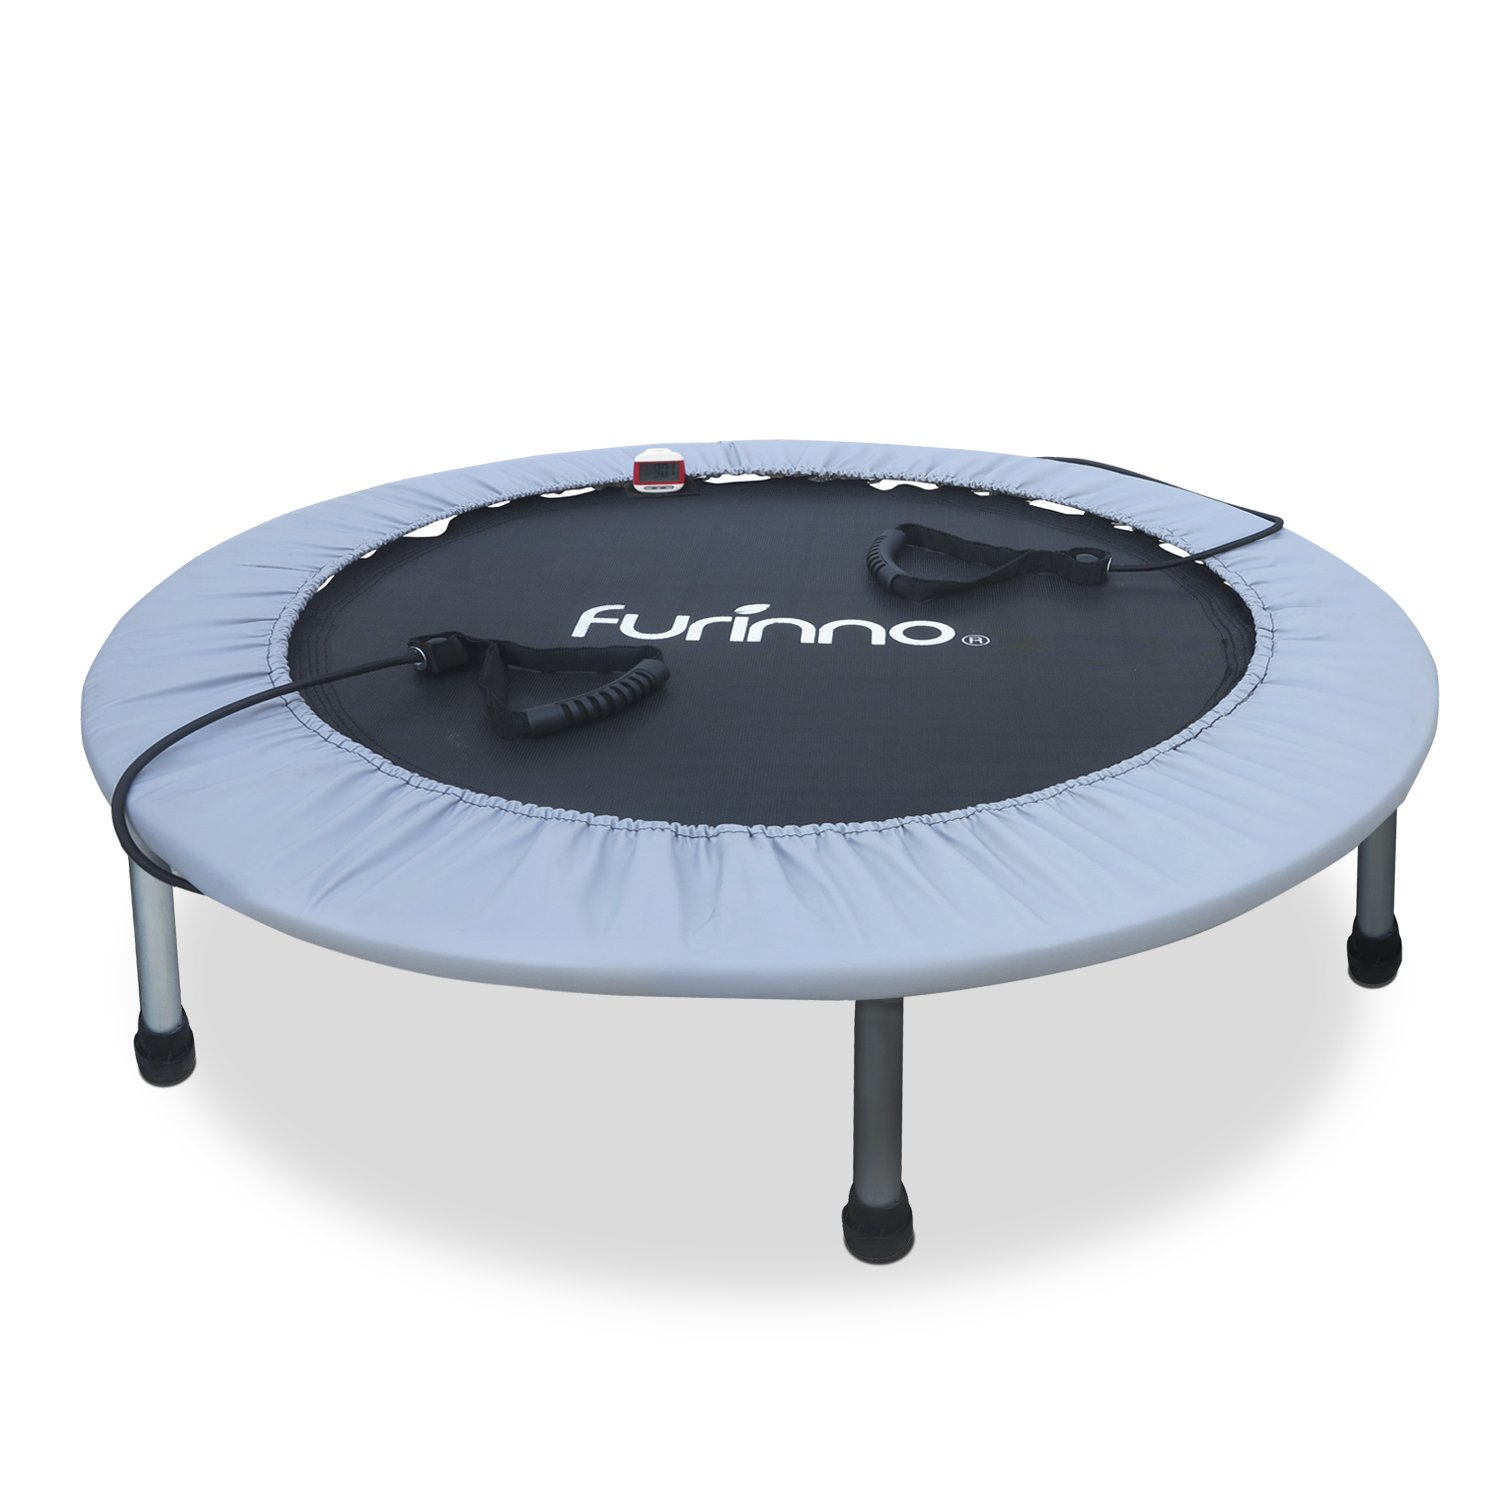 Furinno FT7138MR 38'' Trampoline with Monitor & Resistance Tube